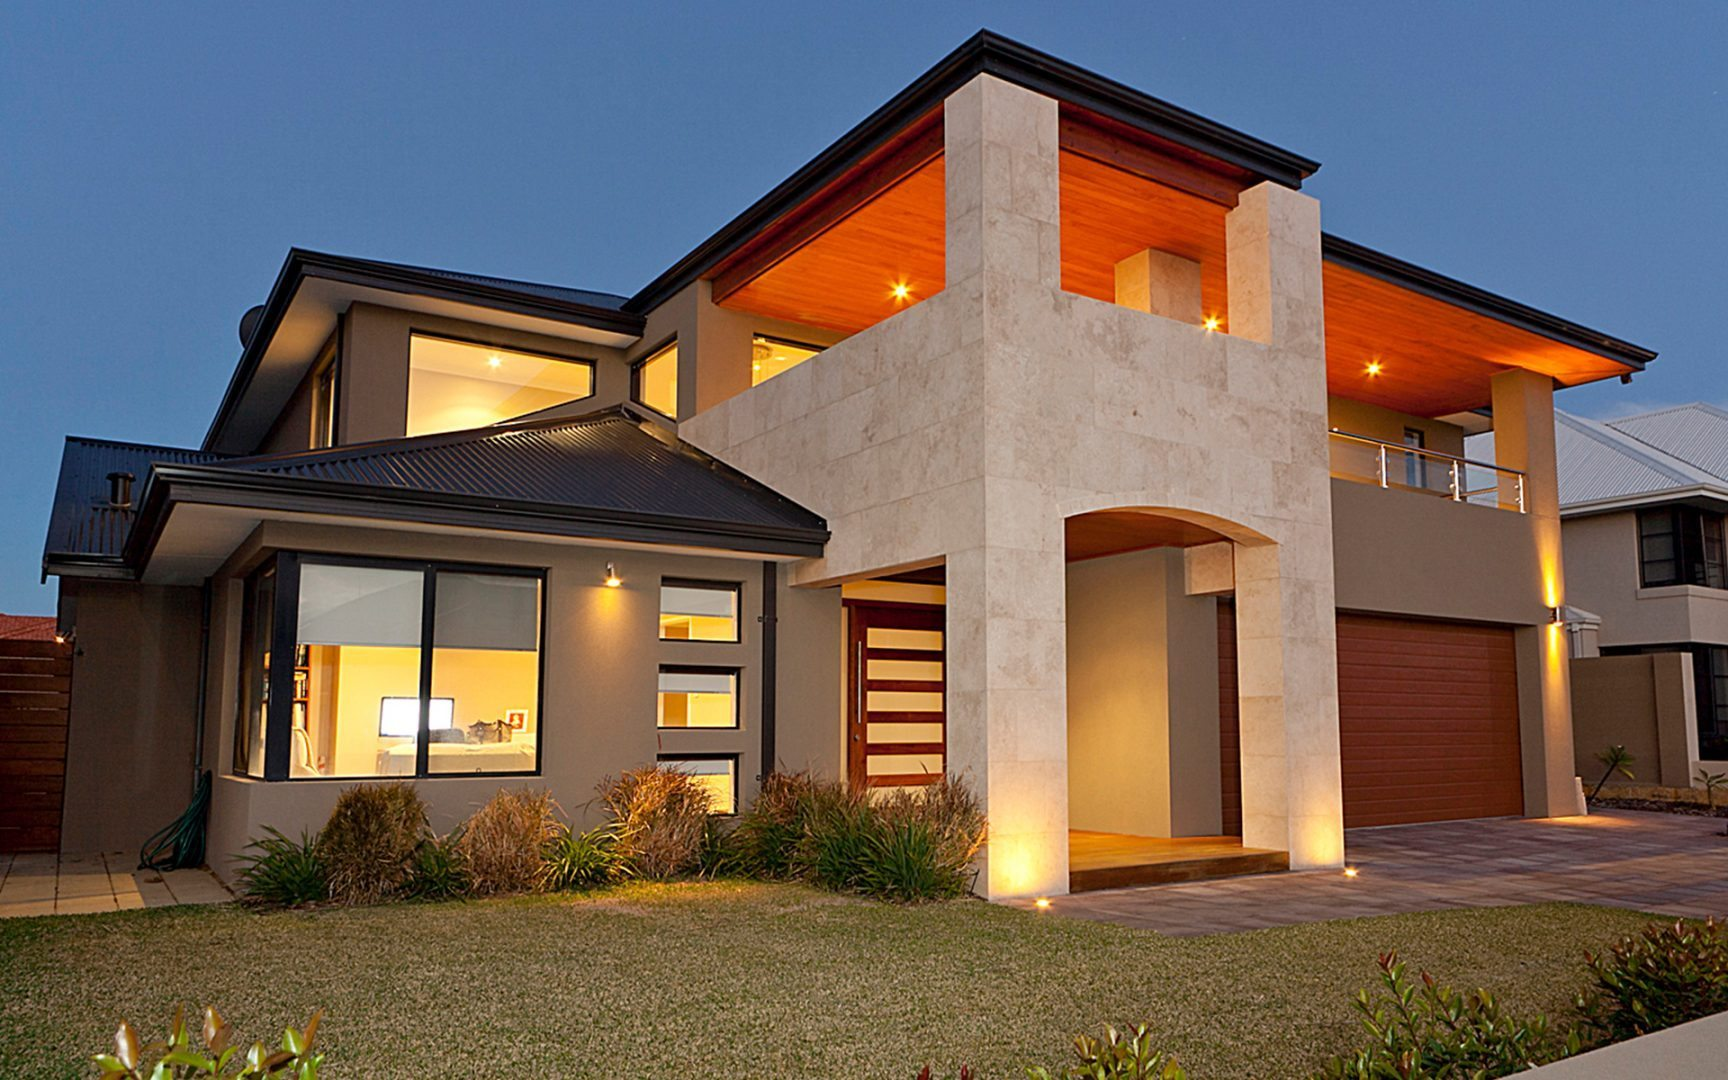 Double storey homes, House extensions, Home builders, Home extensions, Granny Flats